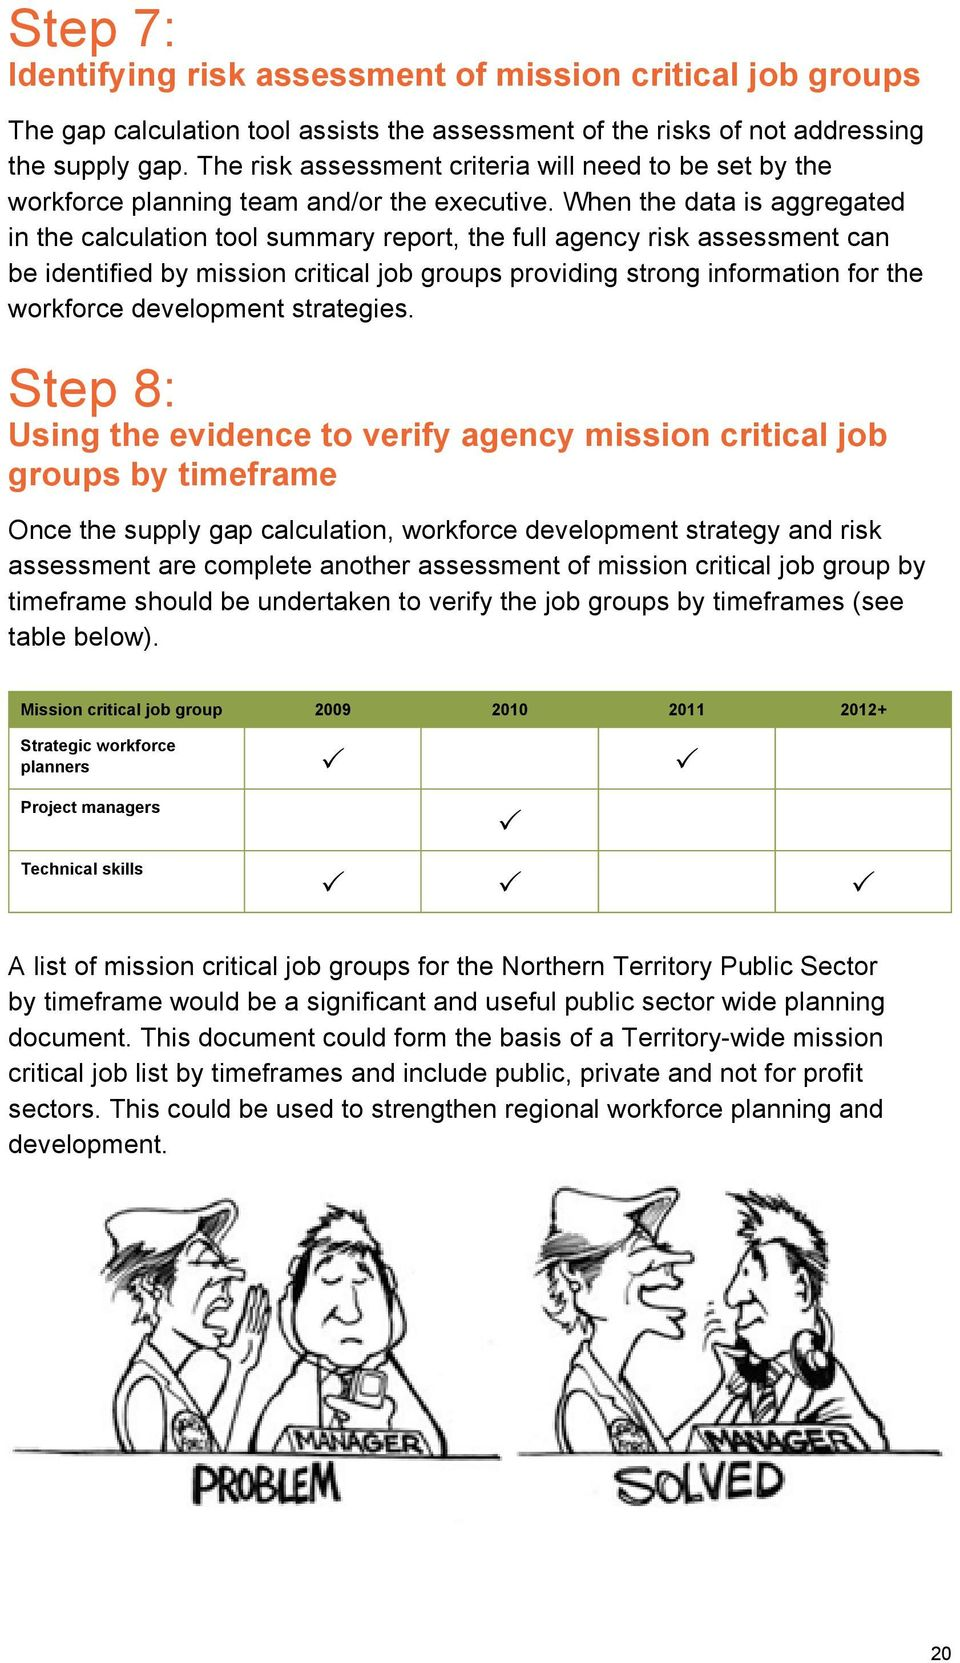 When the data is aggregated in the calculation tool summary report, the full agency risk assessment can be identified by mission critical job groups providing strong information for the workforce